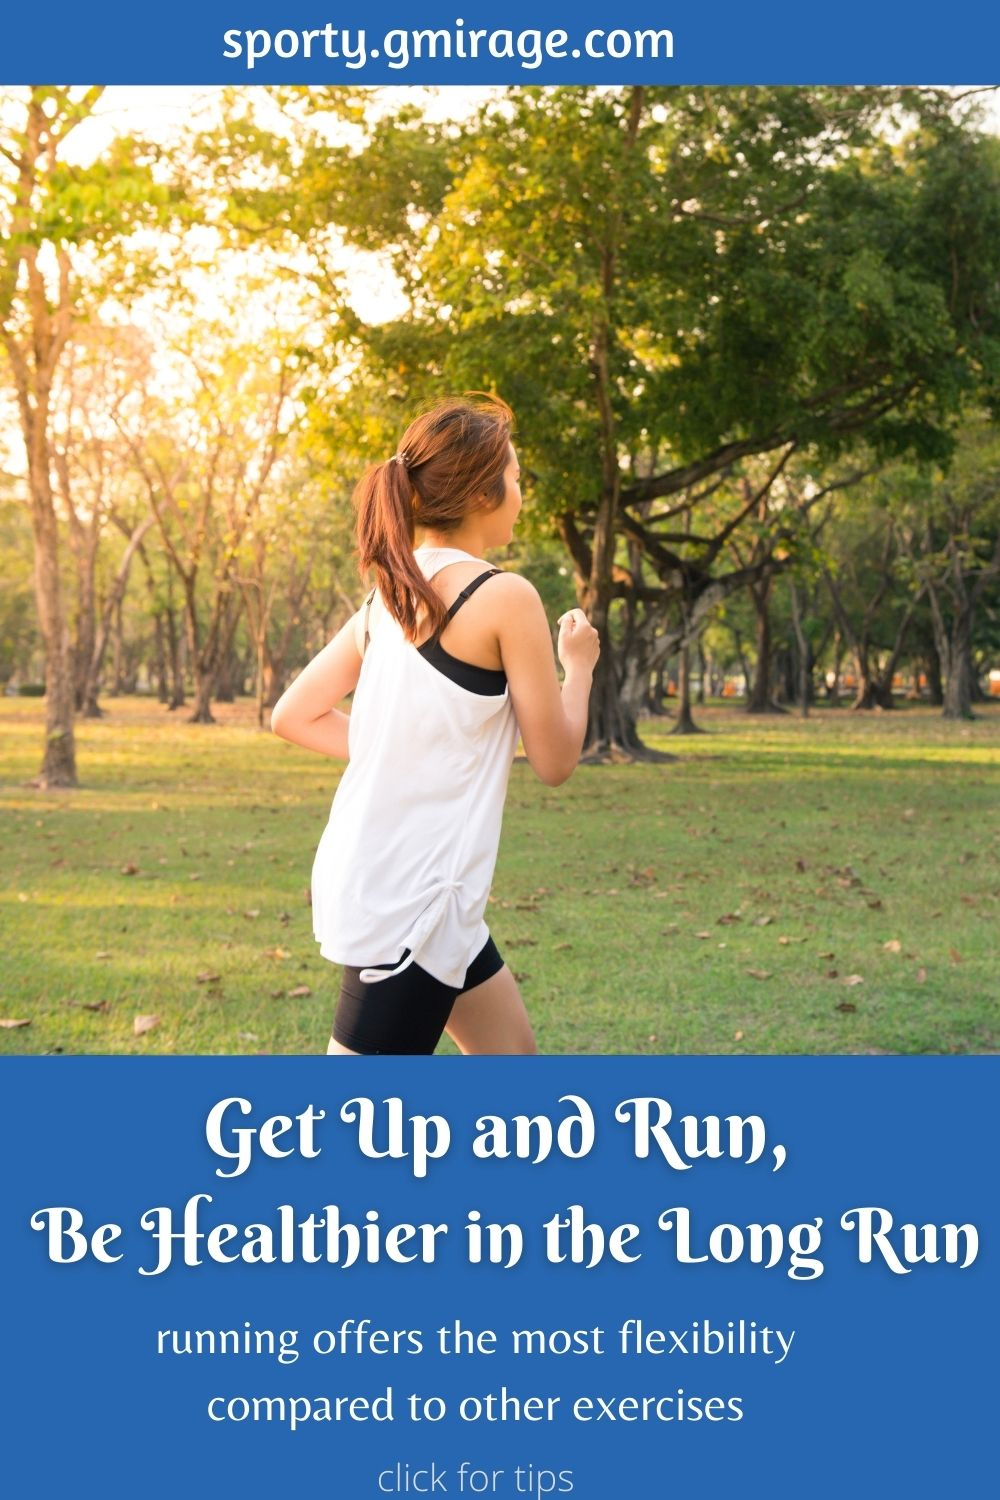 Get Up and Run, Be Healthier in the Long Run